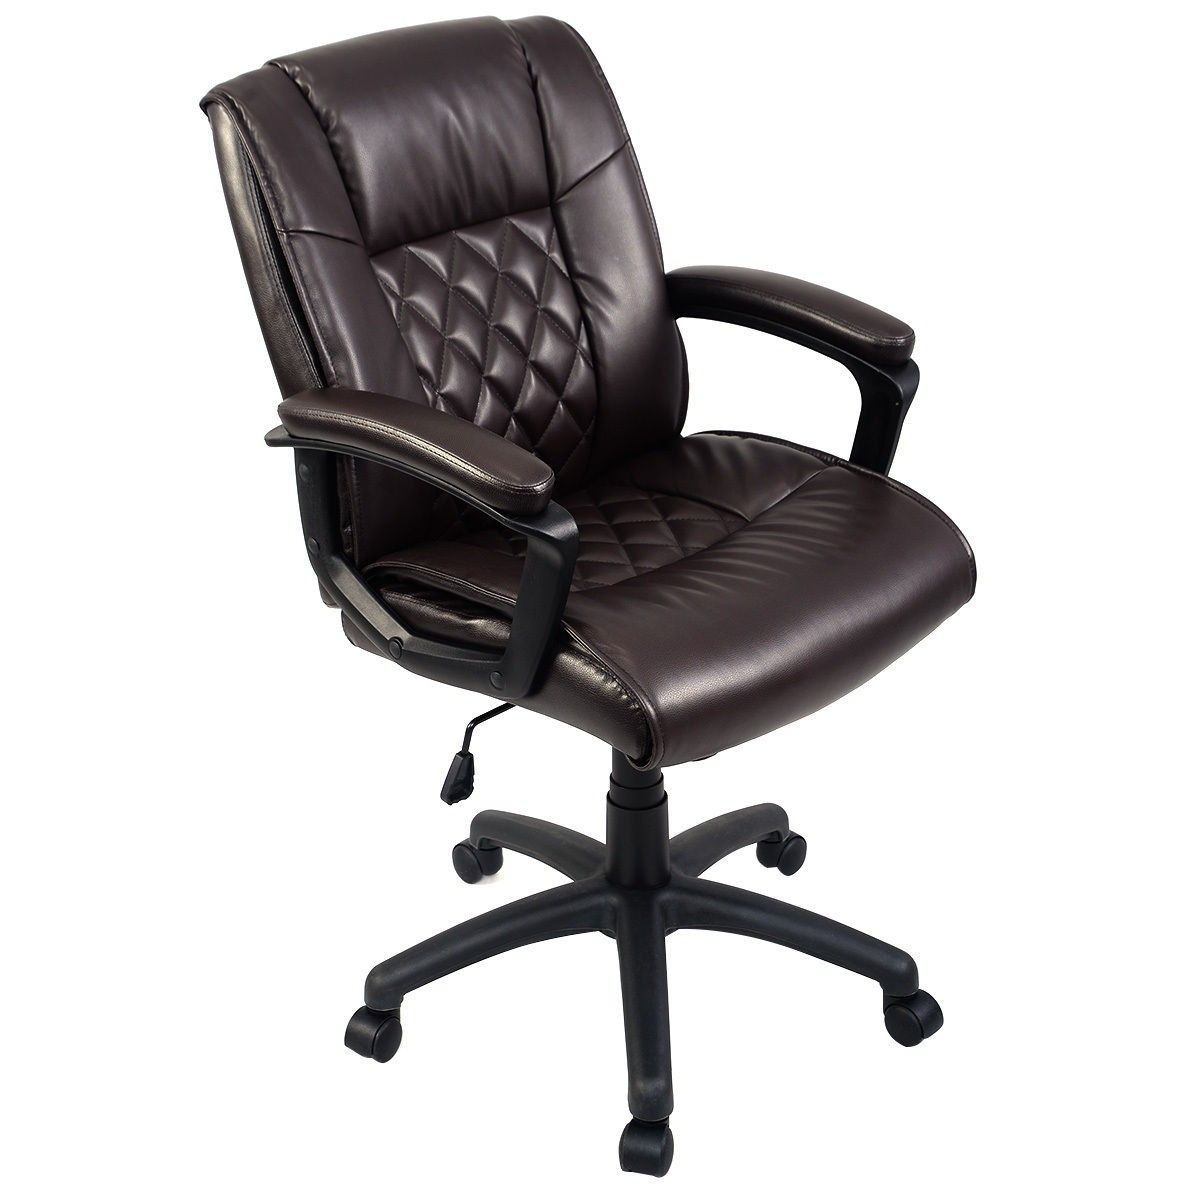 Brown Mid Back Executive Computer Chair Office Chair Ergonomic Chair Executive Chair